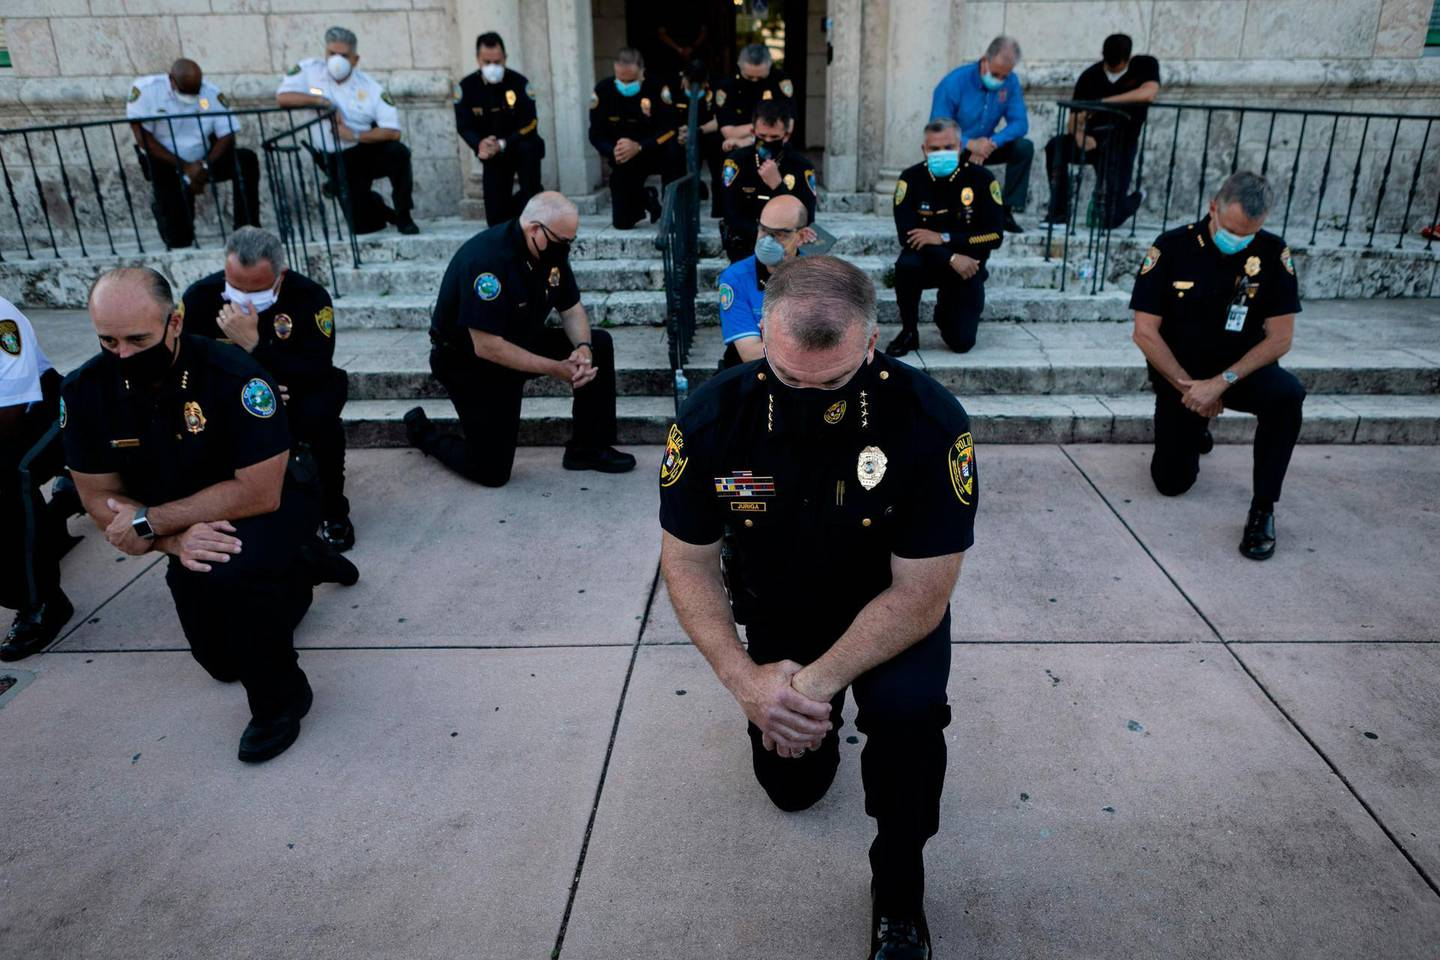 """-- AFP PICTURES OF THE YEAR 2020 --  Police officers kneel during a rally in Coral Gables, Florida on May 30, 2020 in response to the recent death of George Floyd, an unarmed black man who died while being arrested and pinned to the ground by a Minneapolis police officer. Clashes broke out and major cities imposed curfews as America began another night of unrest Saturday with angry demonstrators ignoring warnings from President Donald Trump that his government would stop violent protests over police brutality """"cold."""" -   / AFP / Eva Marie UZCATEGUI"""